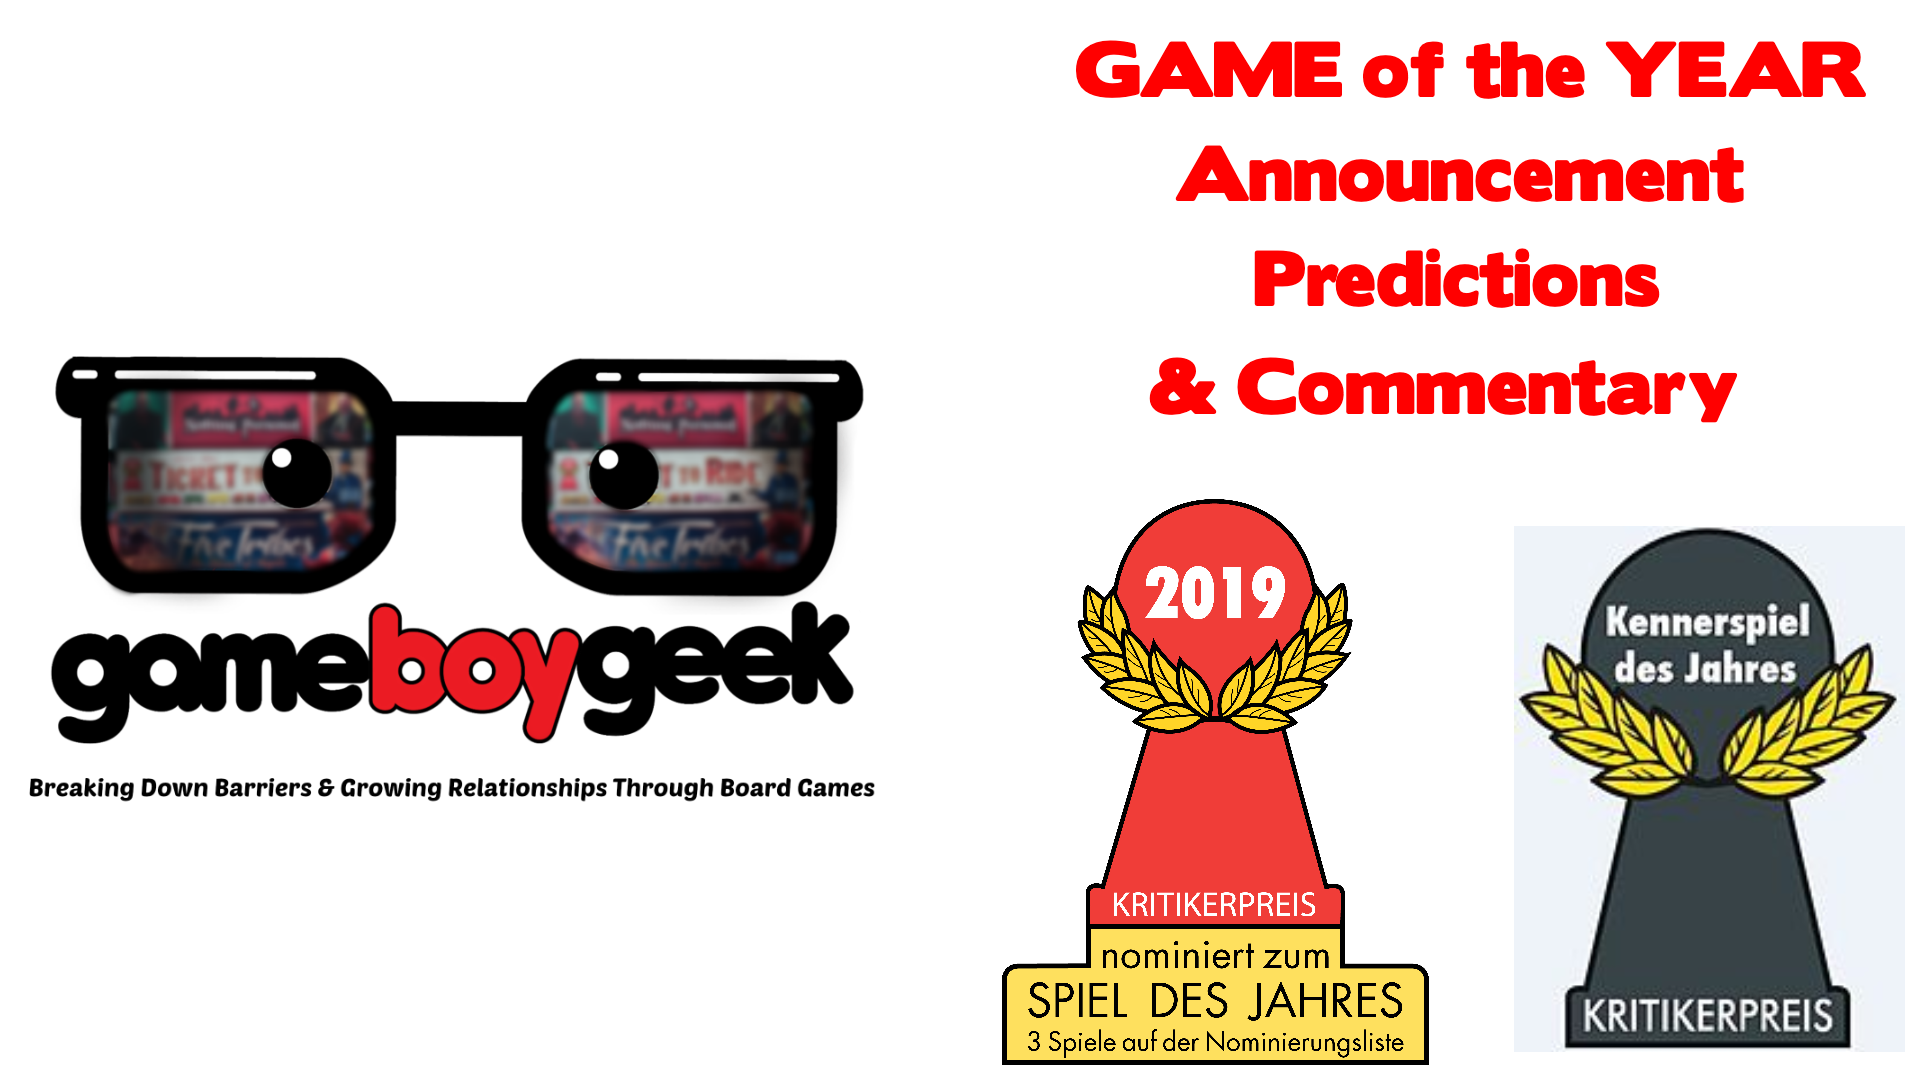 2019 Game of the Year Spiel Des Jahres & Kennerspiel Announcement, Predicitons, & Commentary with th